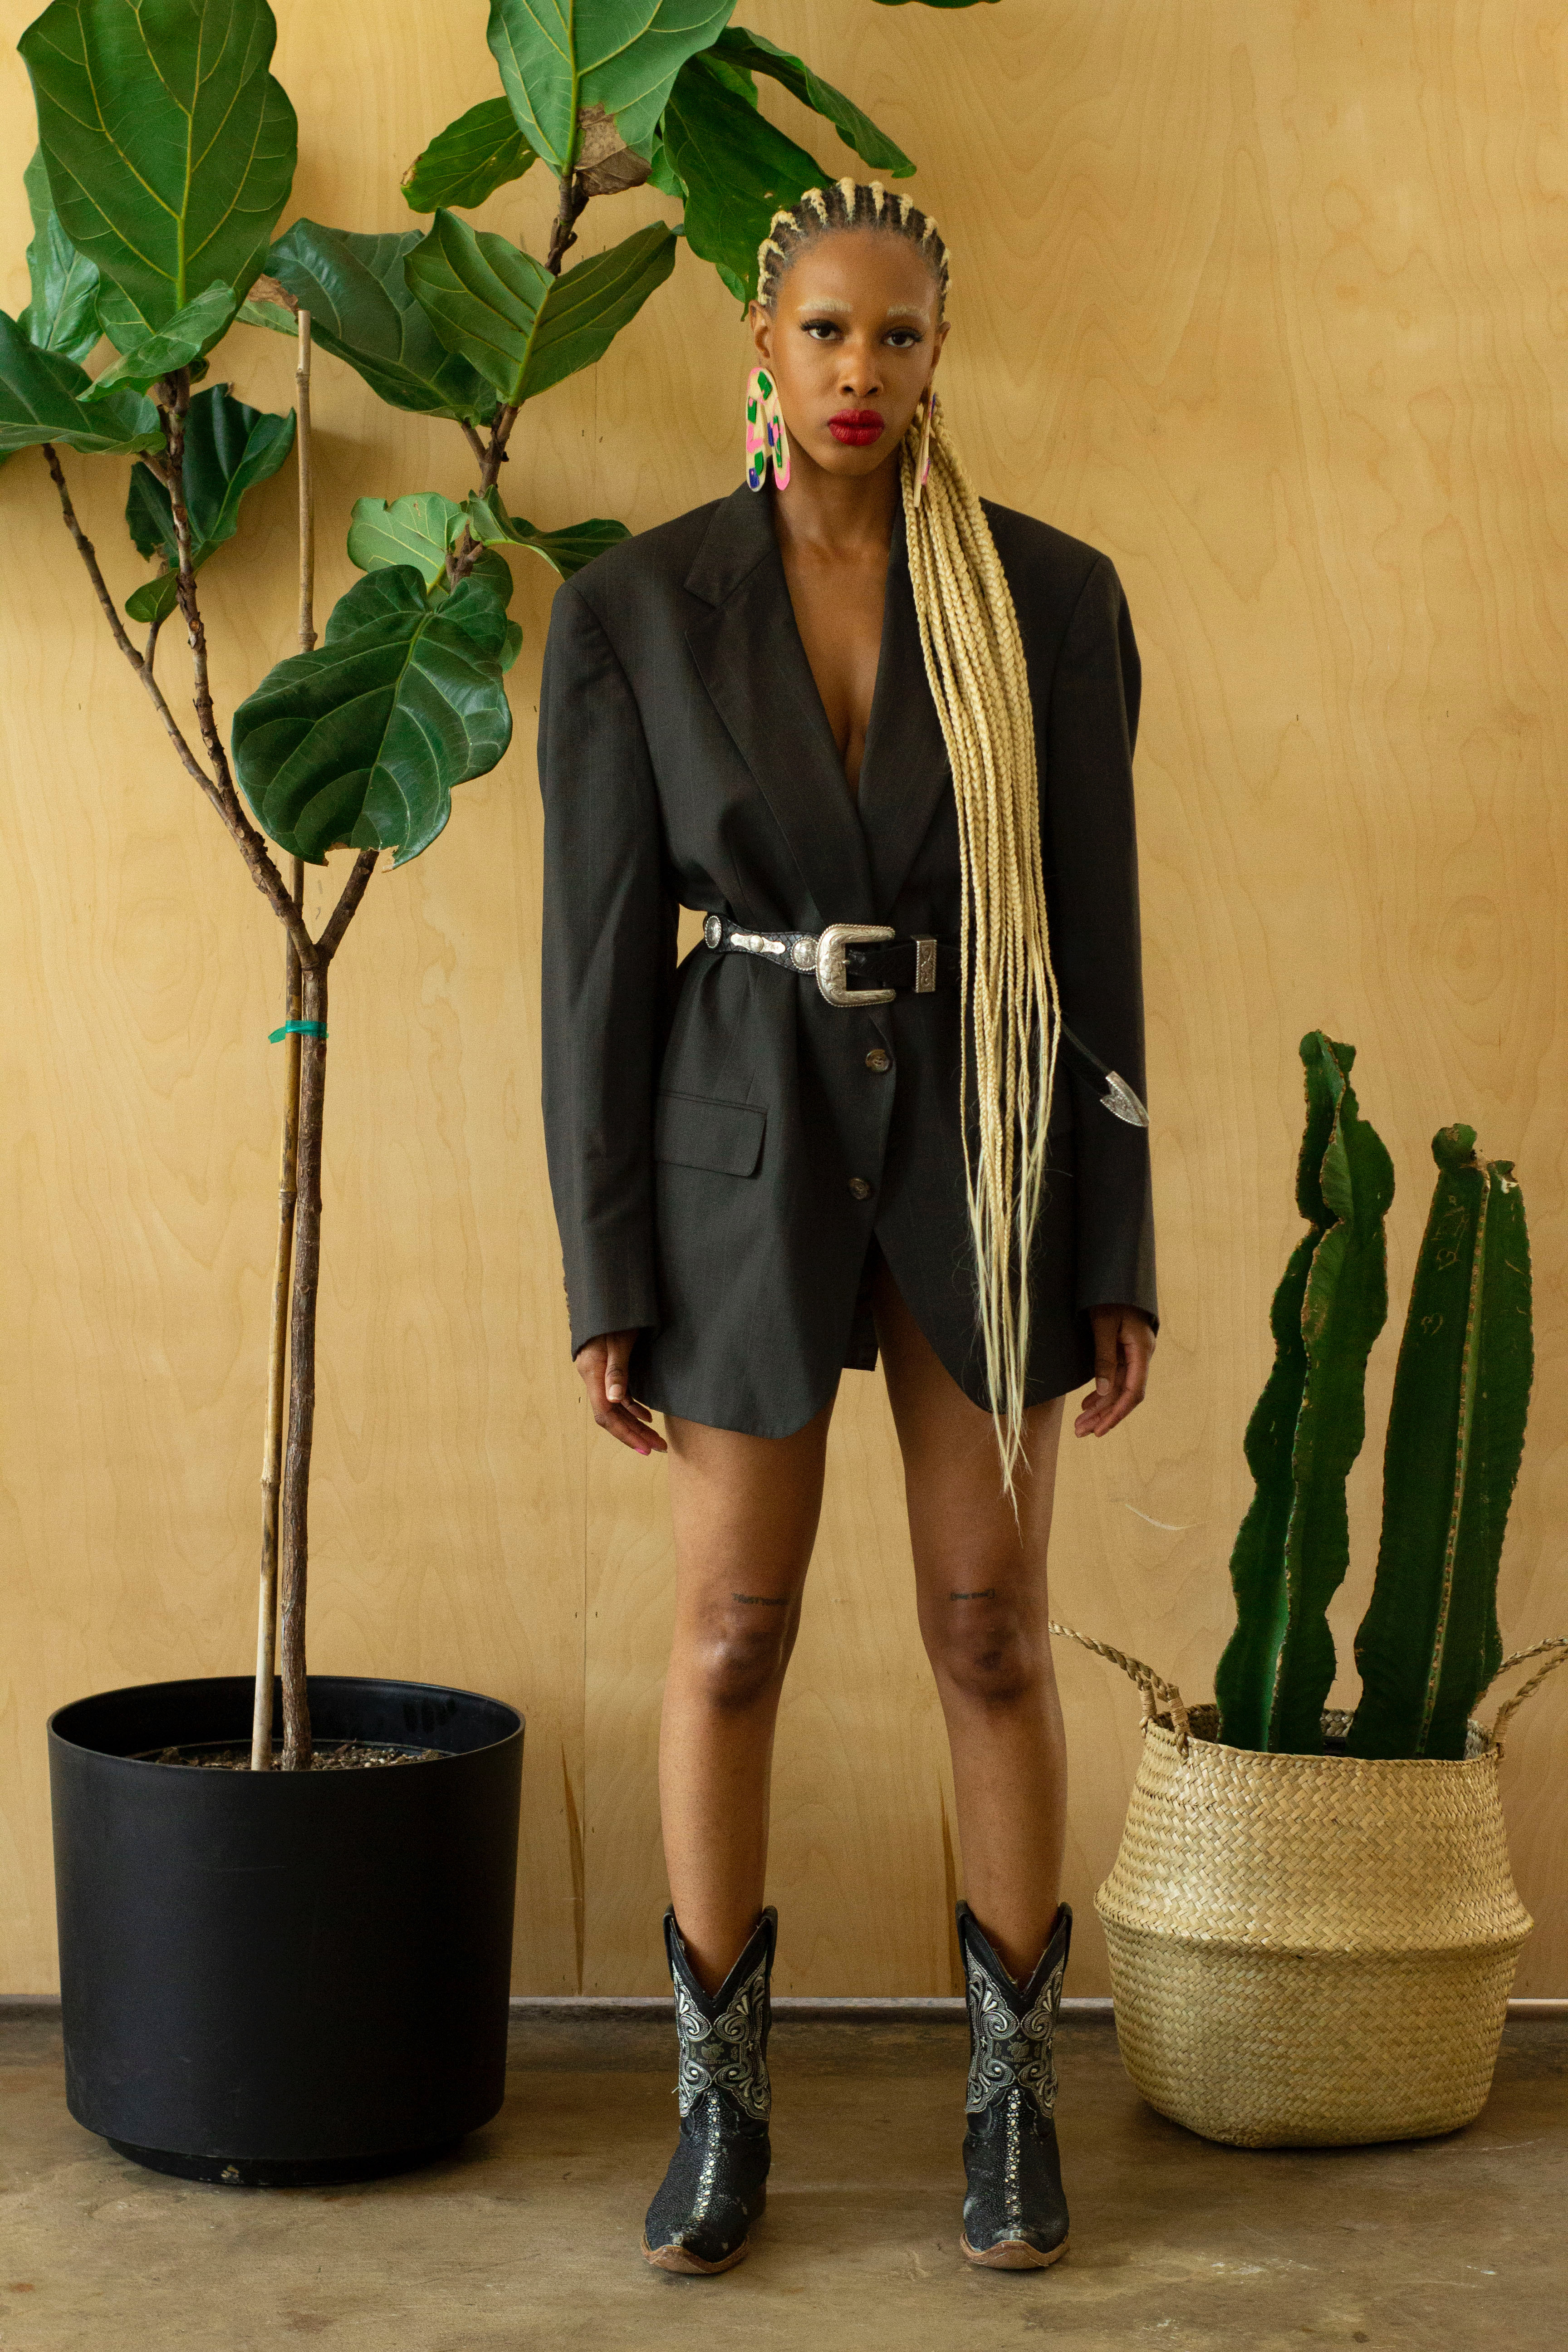 Full body portrait of Taylor in a studio surrounded by plants. She is wearing a black blazer, cowgirl boots, and her statement earrings.